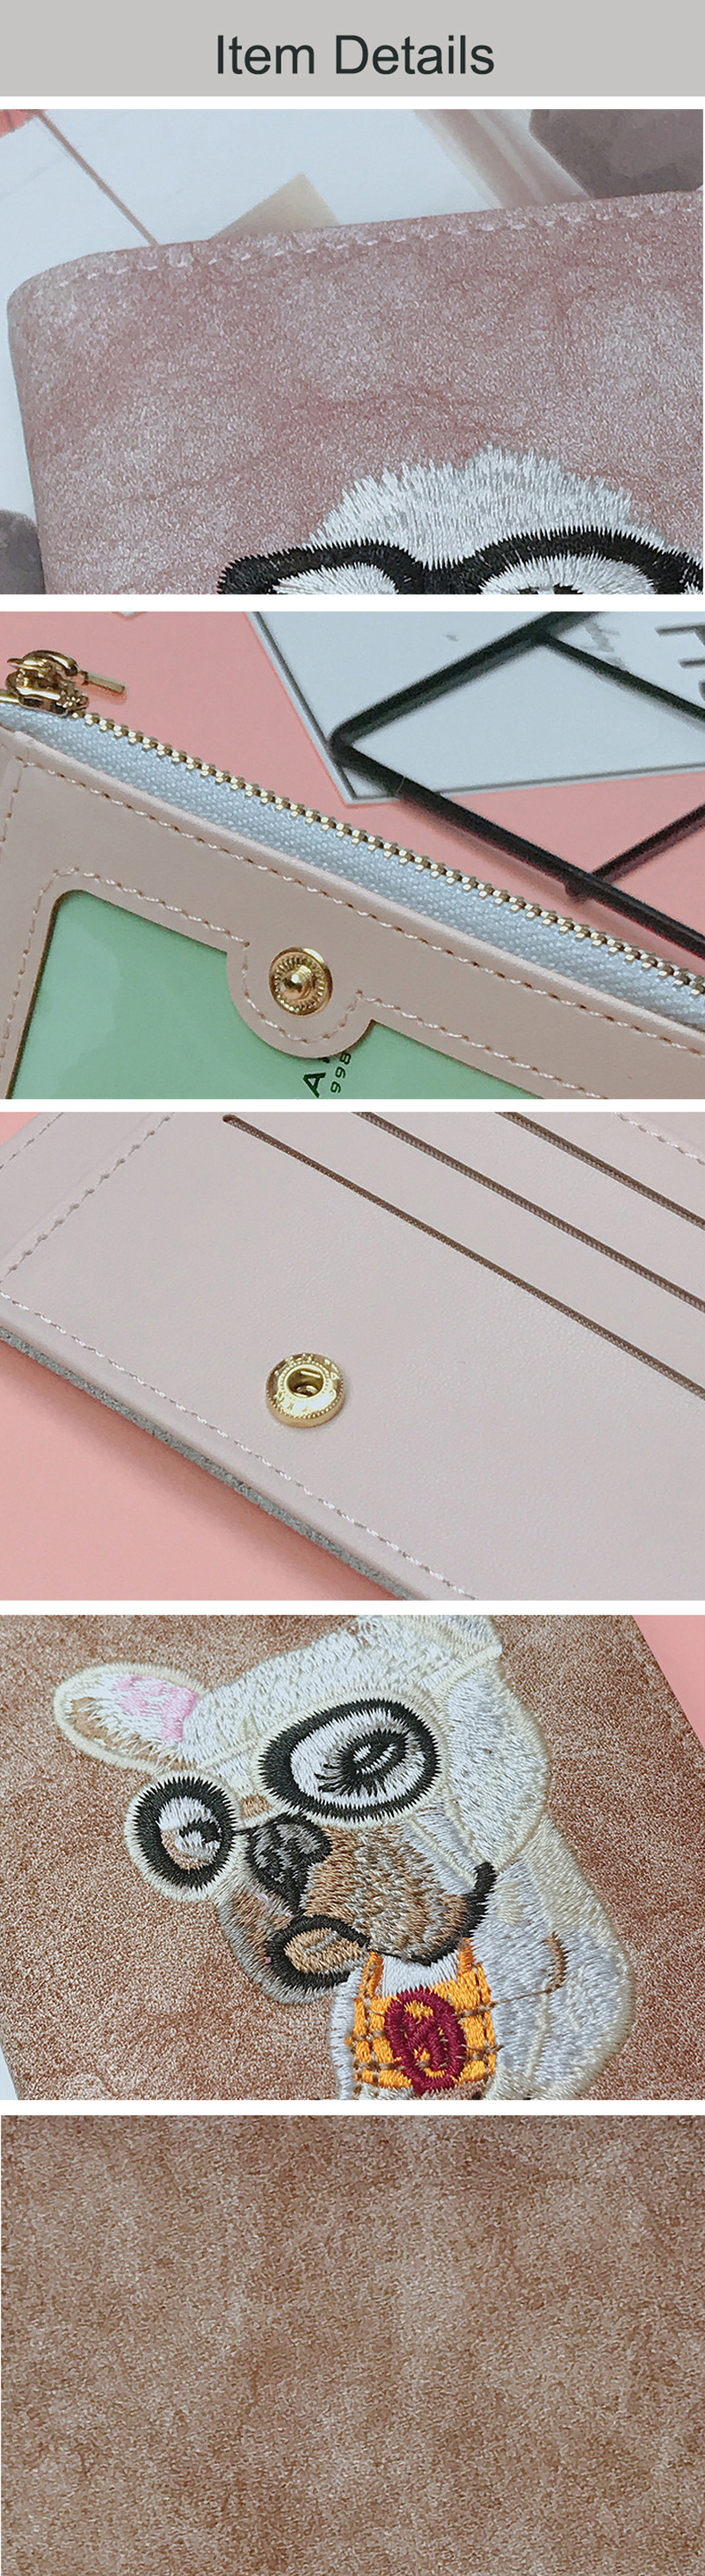 YOUNNE Women Wallets PU Leather Card Holders for Girls Wallet Bag for Card Holder High Quality Coin Purse Solid Carteira Feminin10